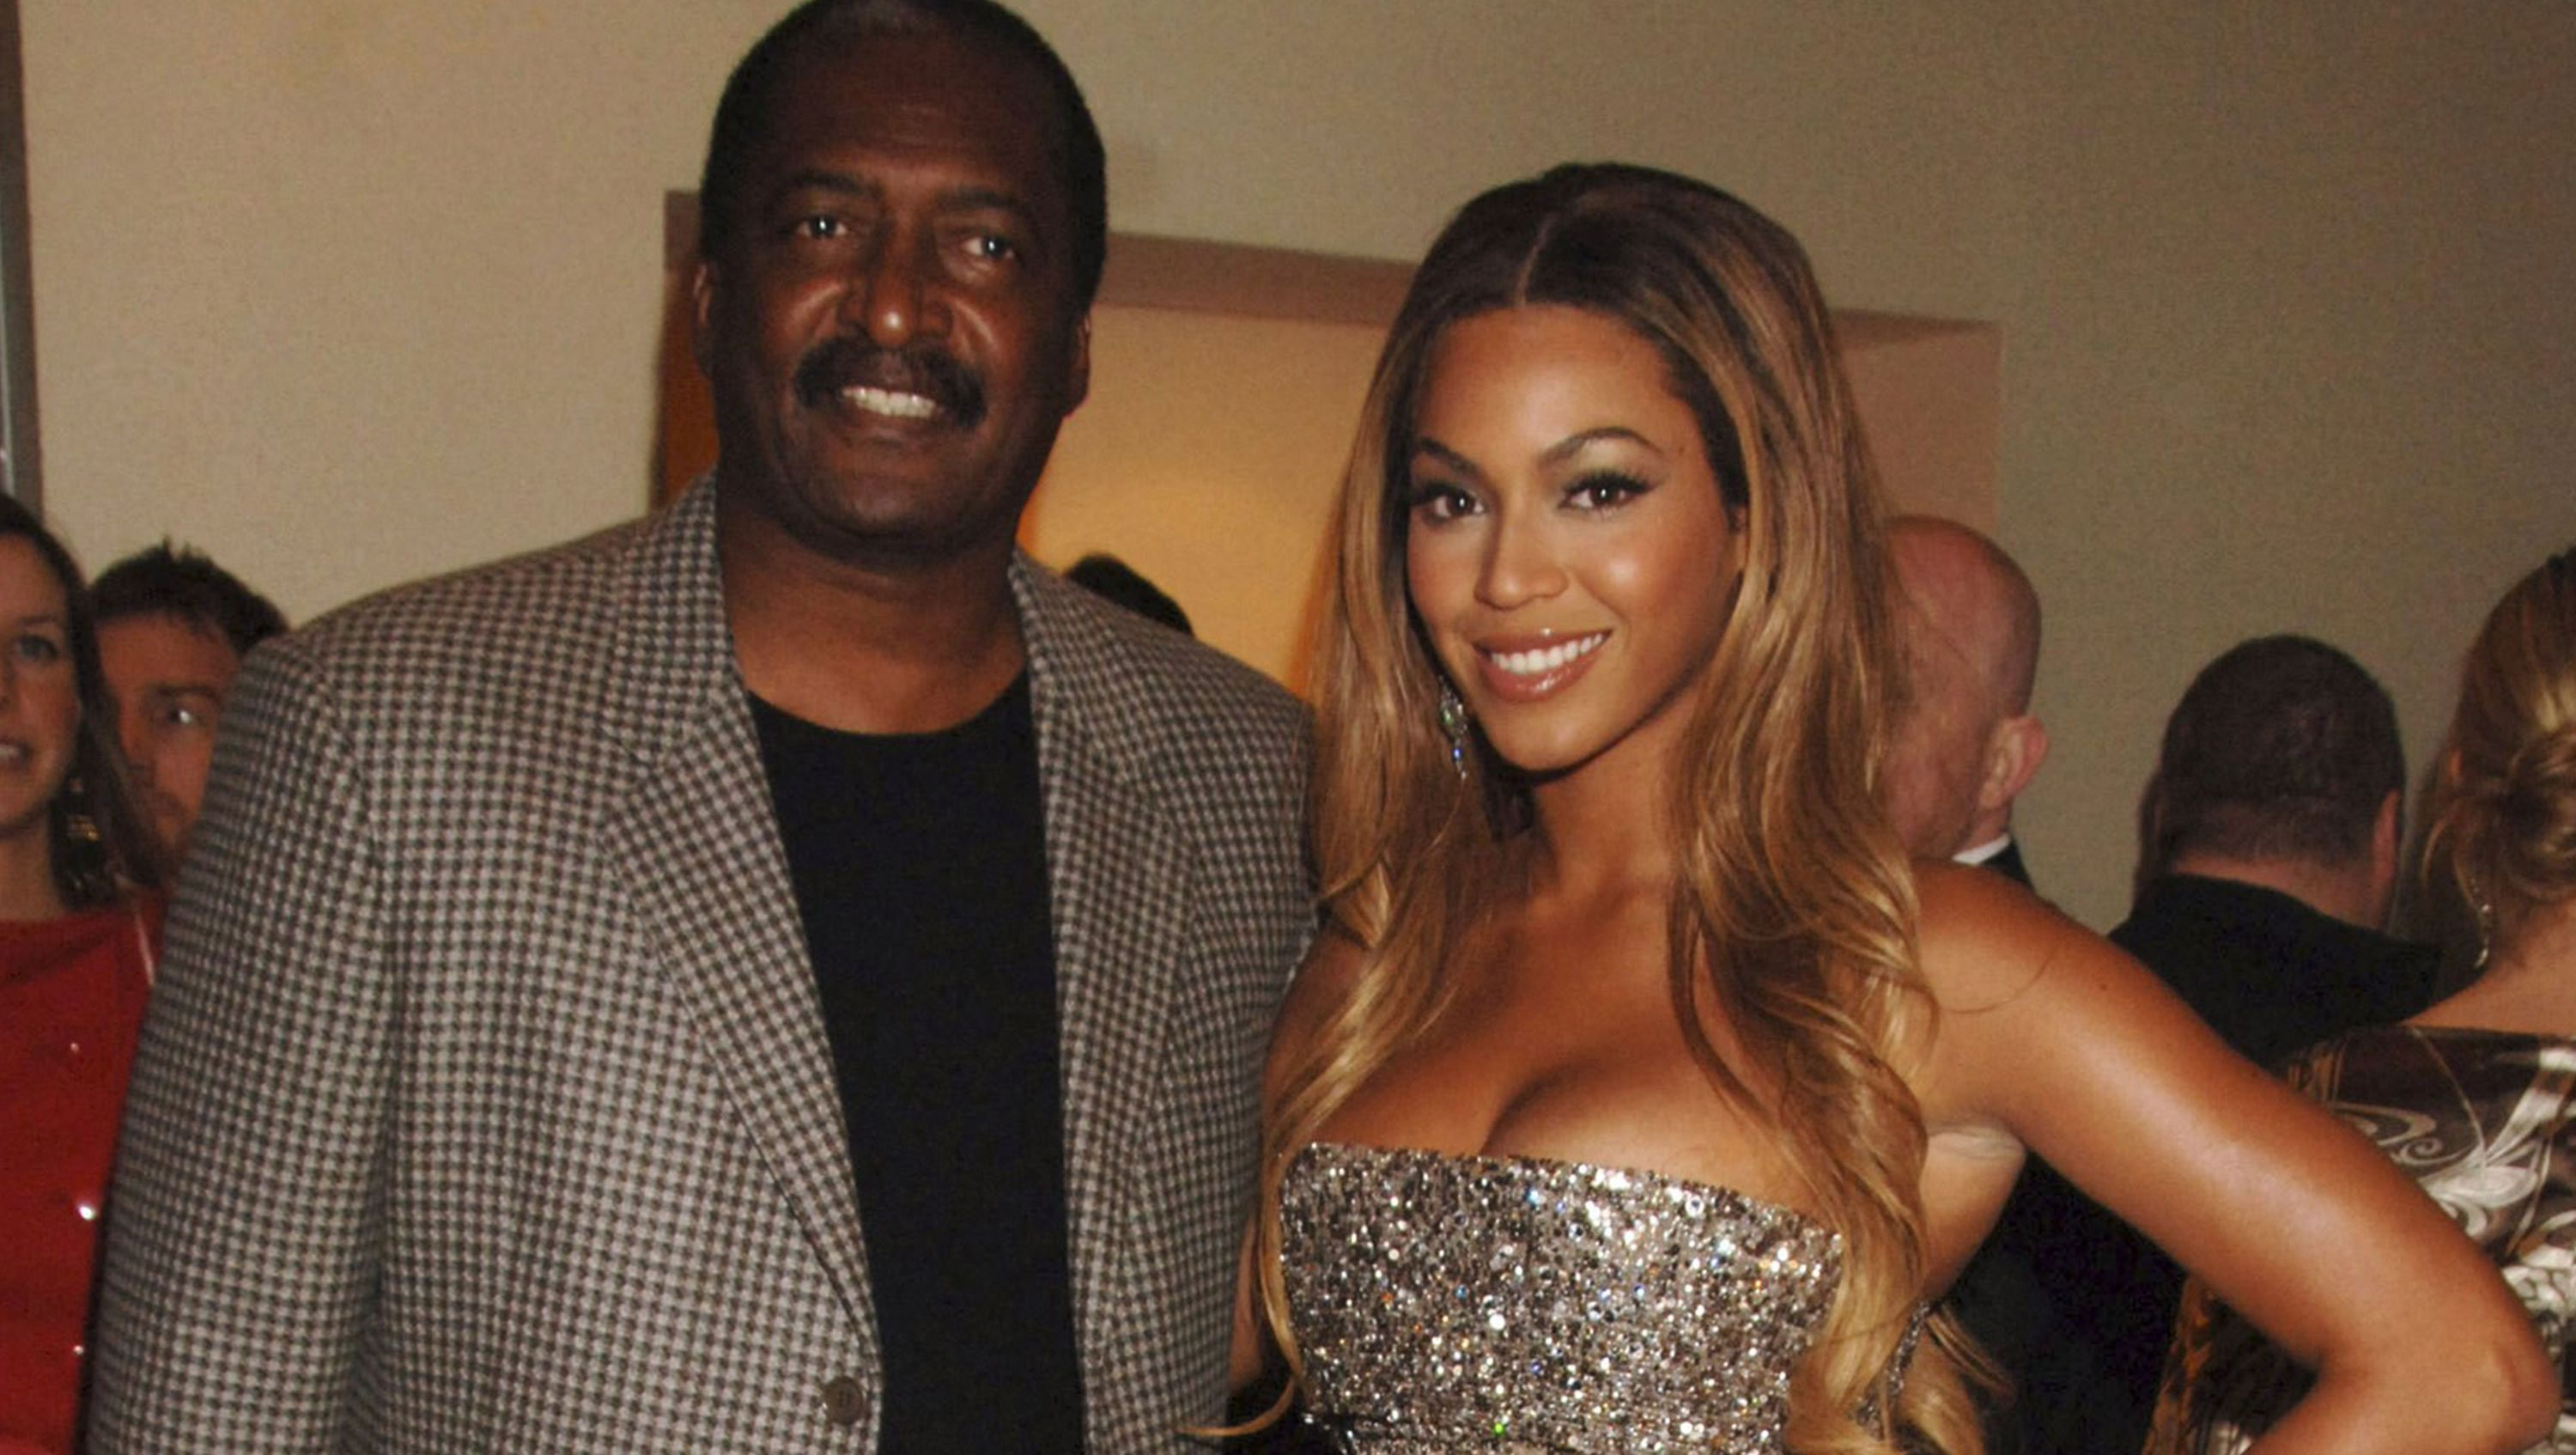 Beyonce and Solange Knowles' father weighs in on that Jay-Z elevator fight